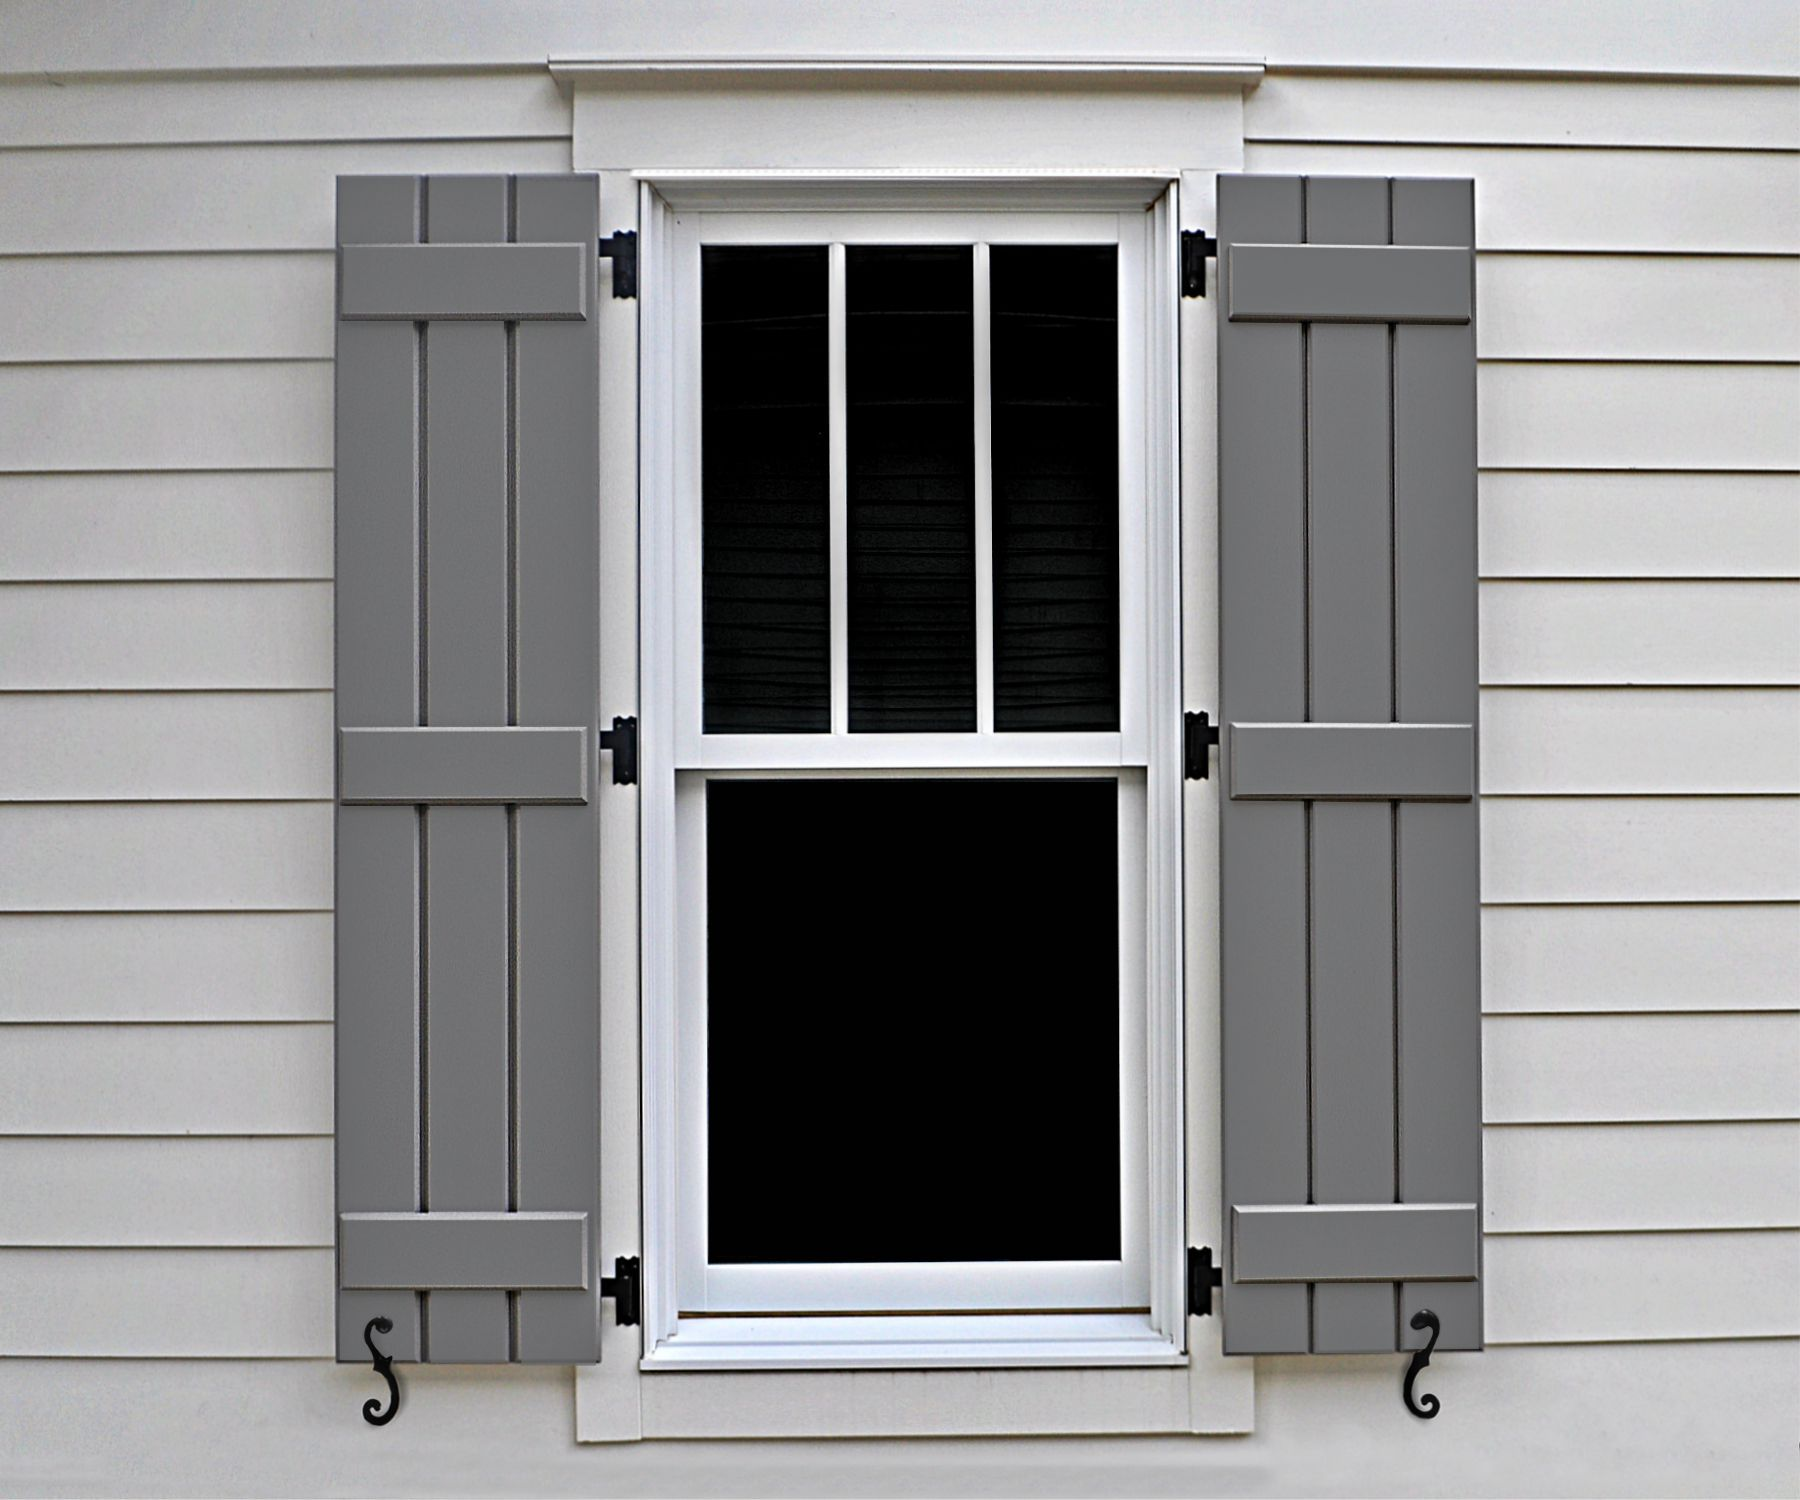 Dominion Custom Shutters are great additions to the exterior of your home or business.